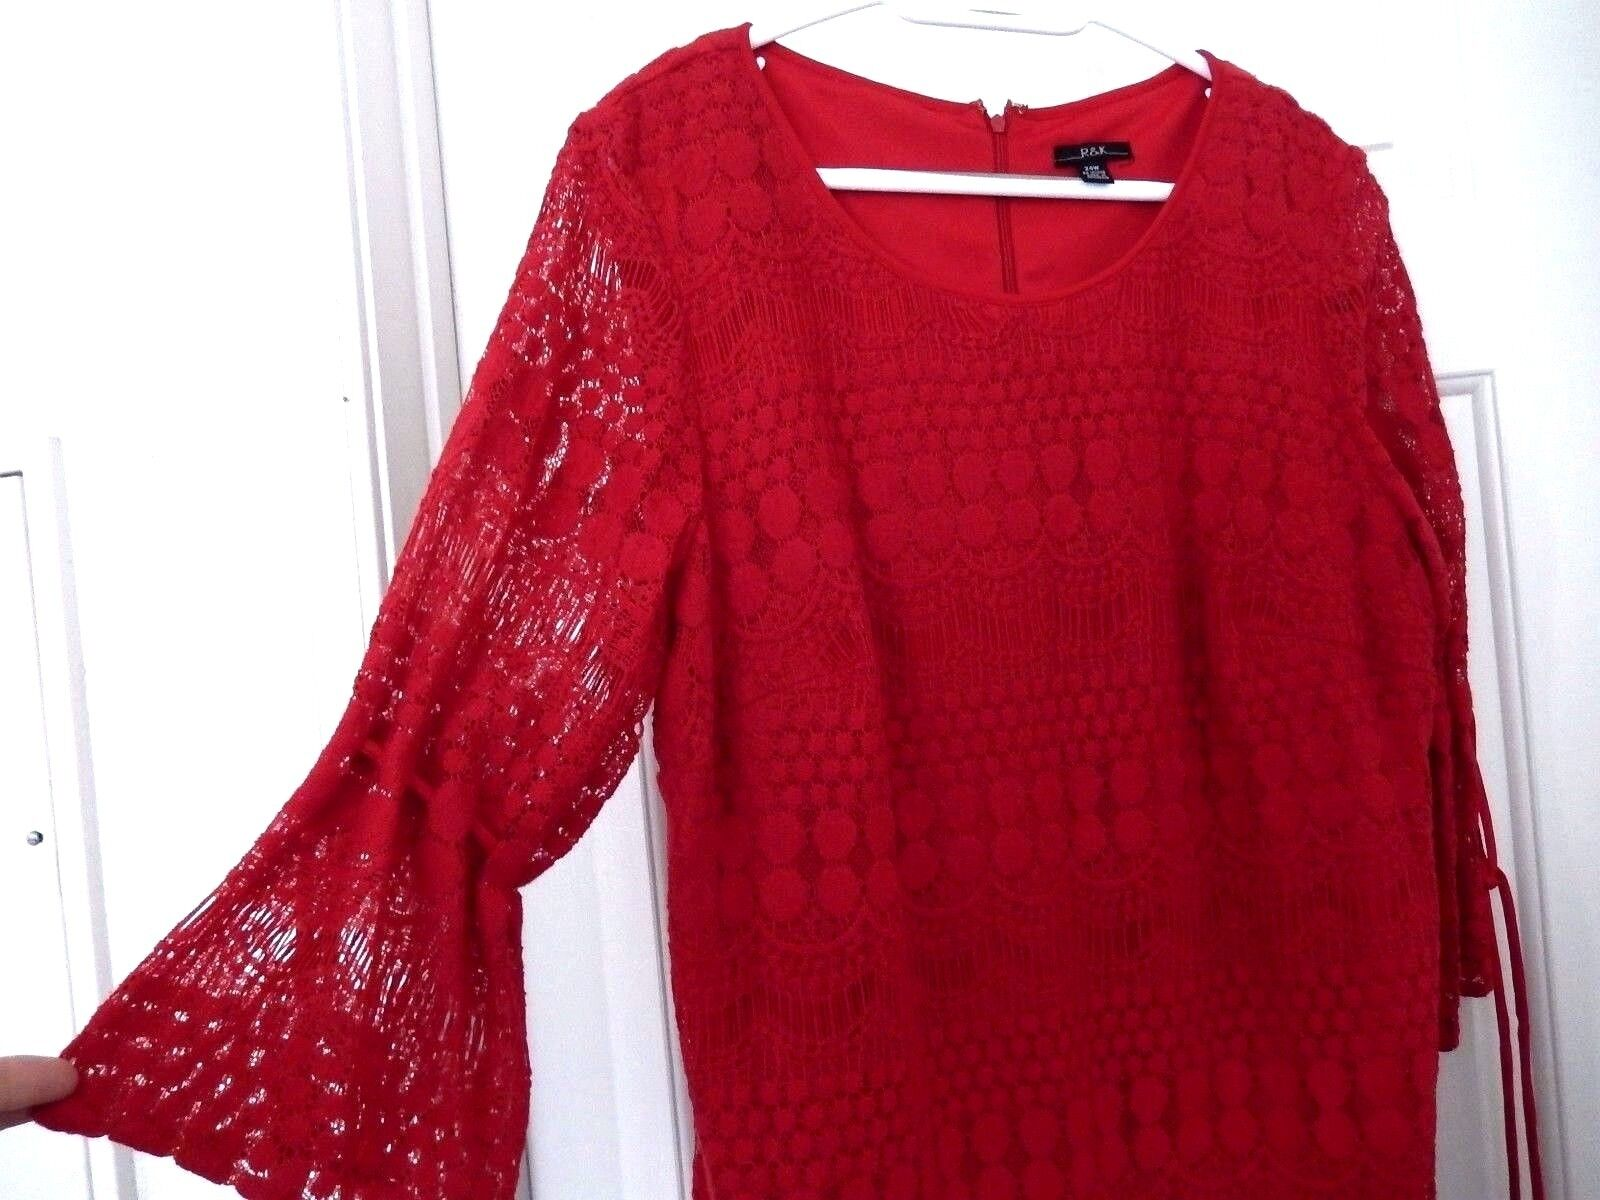 R & K Lace Layer Dress-24W, red  WOW pretty lace detailing    NWT